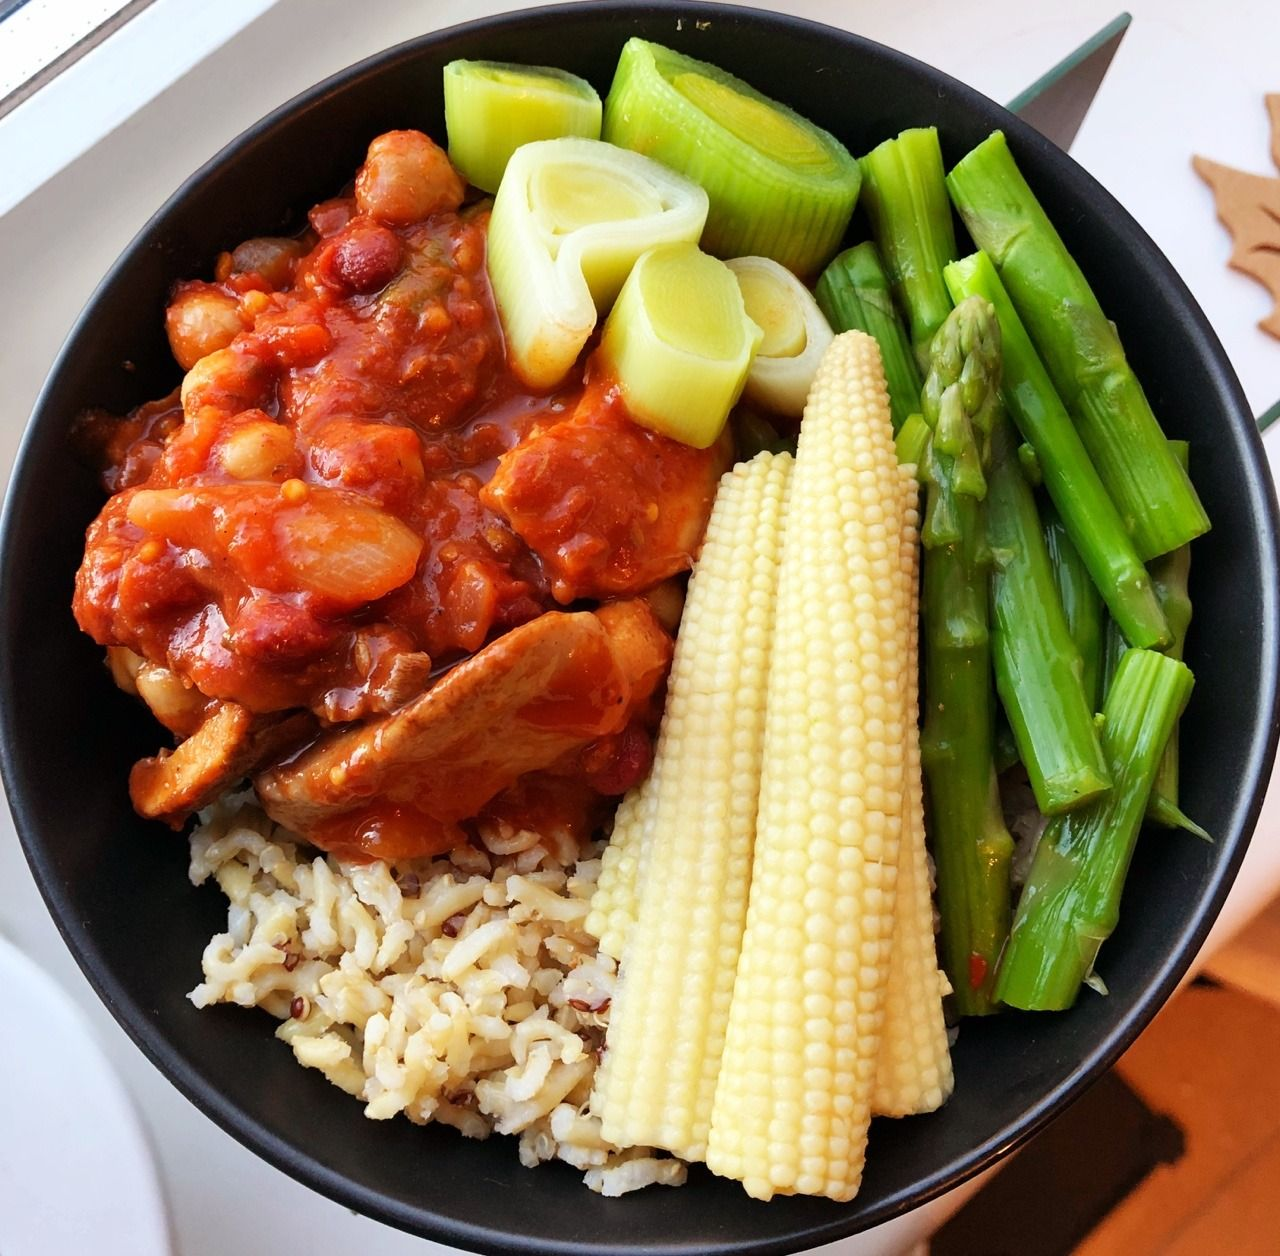 Hers sweet and sour chicken with brown rice and steamed